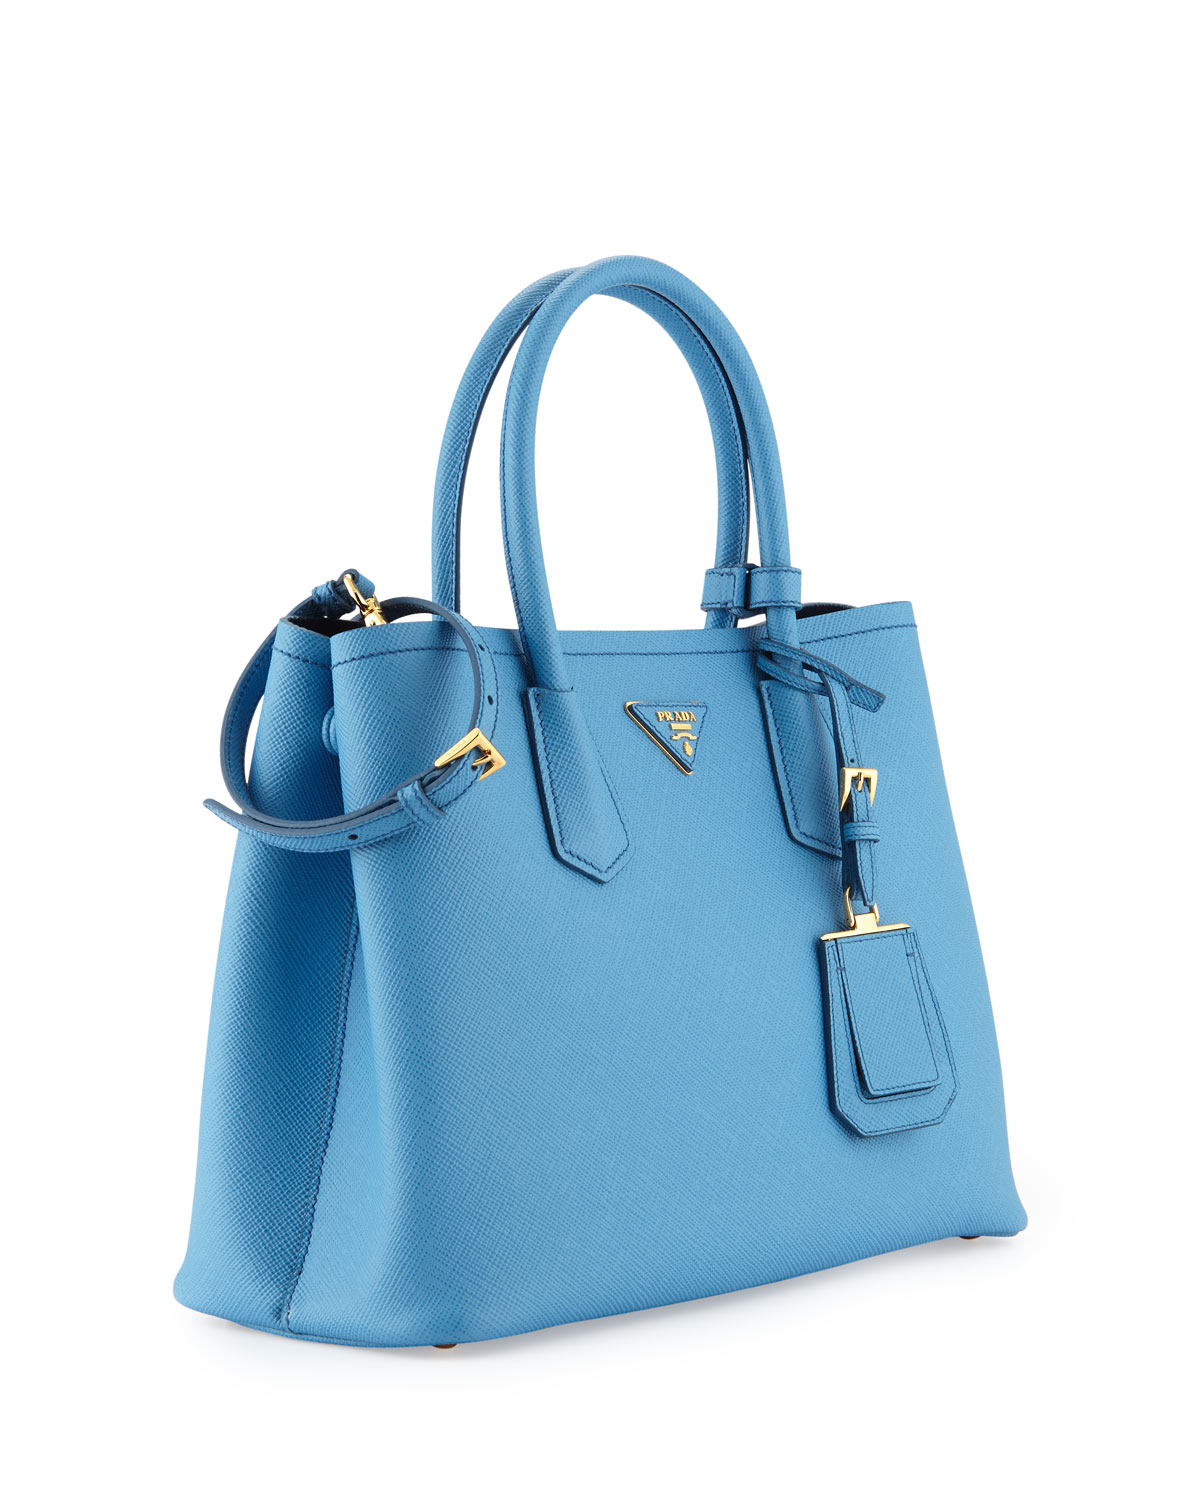 prada saffiano handbag on sale